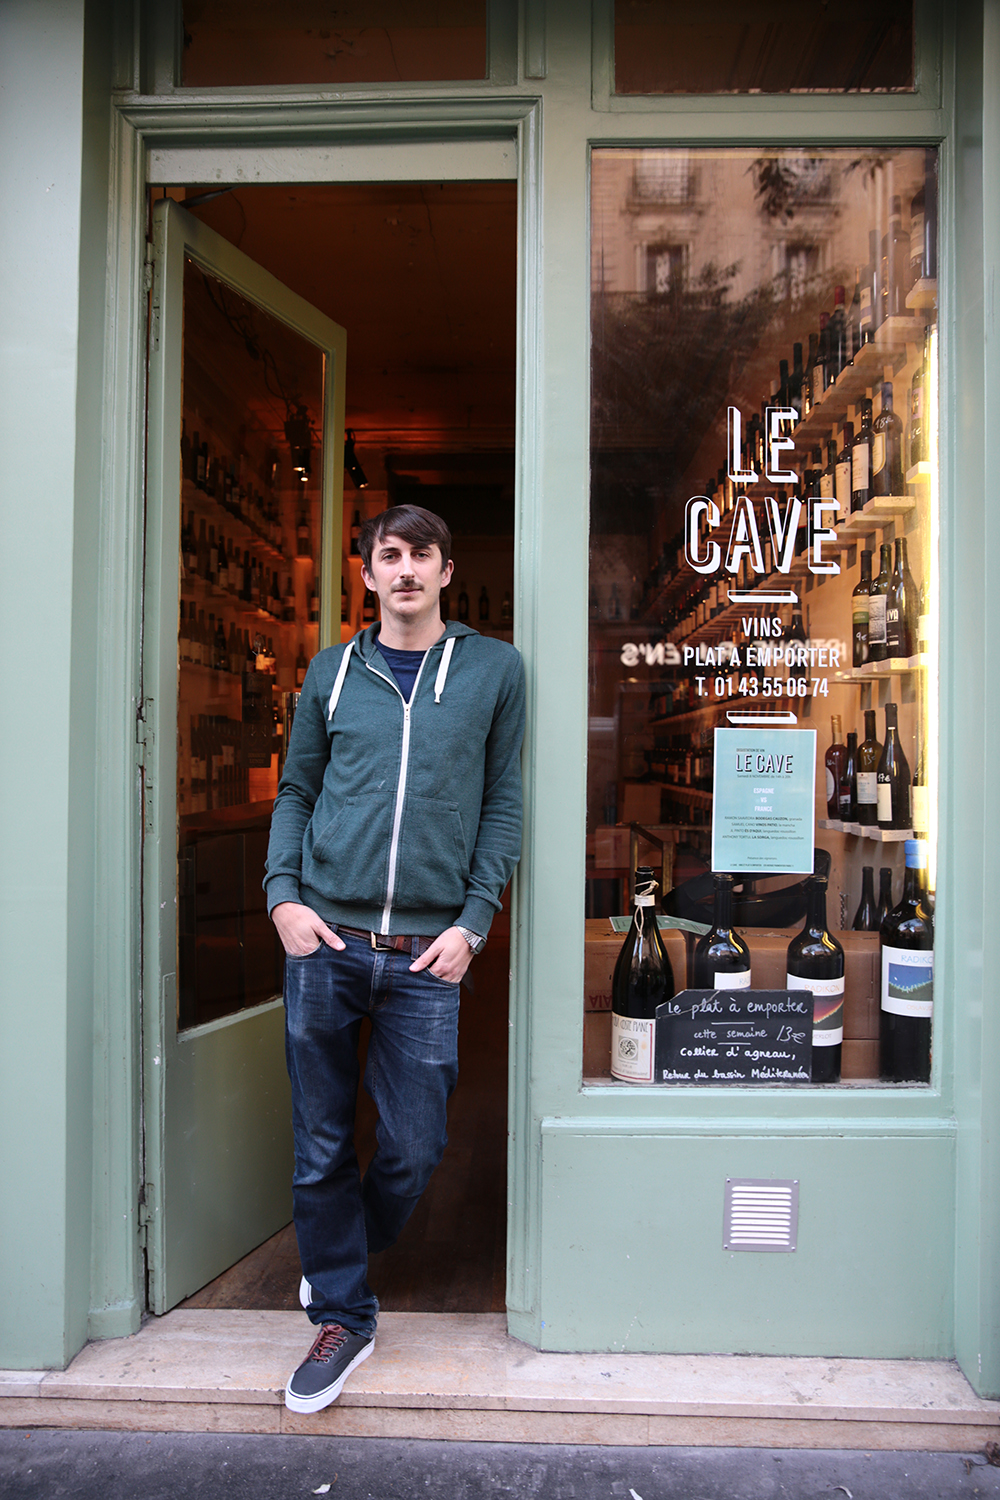 sebastien-chatillon-devanture-cave-parmentier-paris-east-village